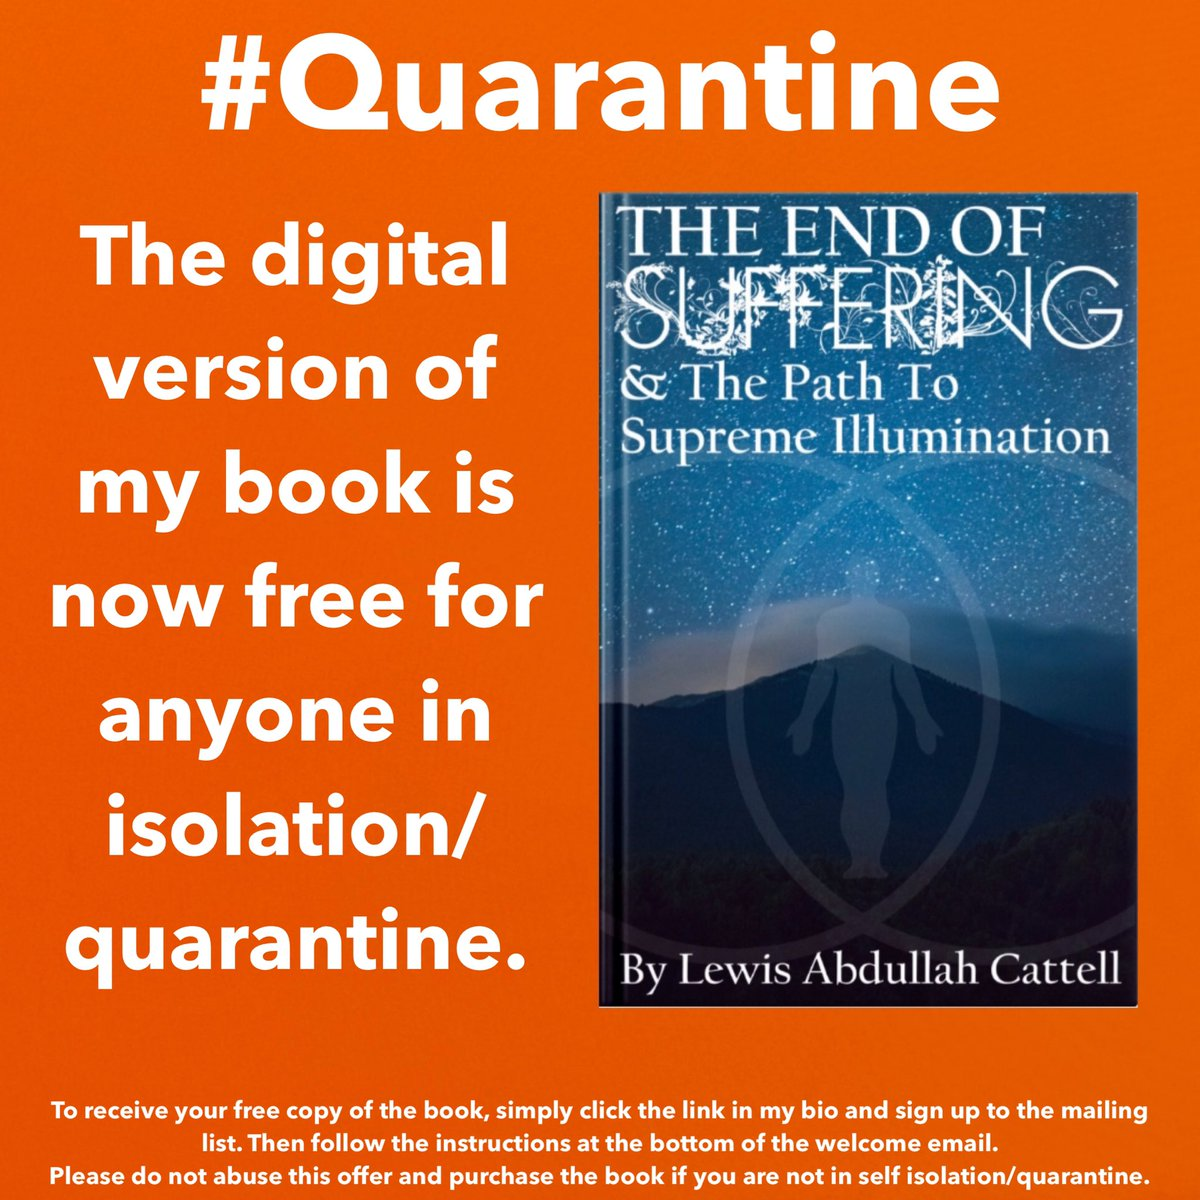 @YOpportunities My book is free for anyone in quarantine (link in bio)